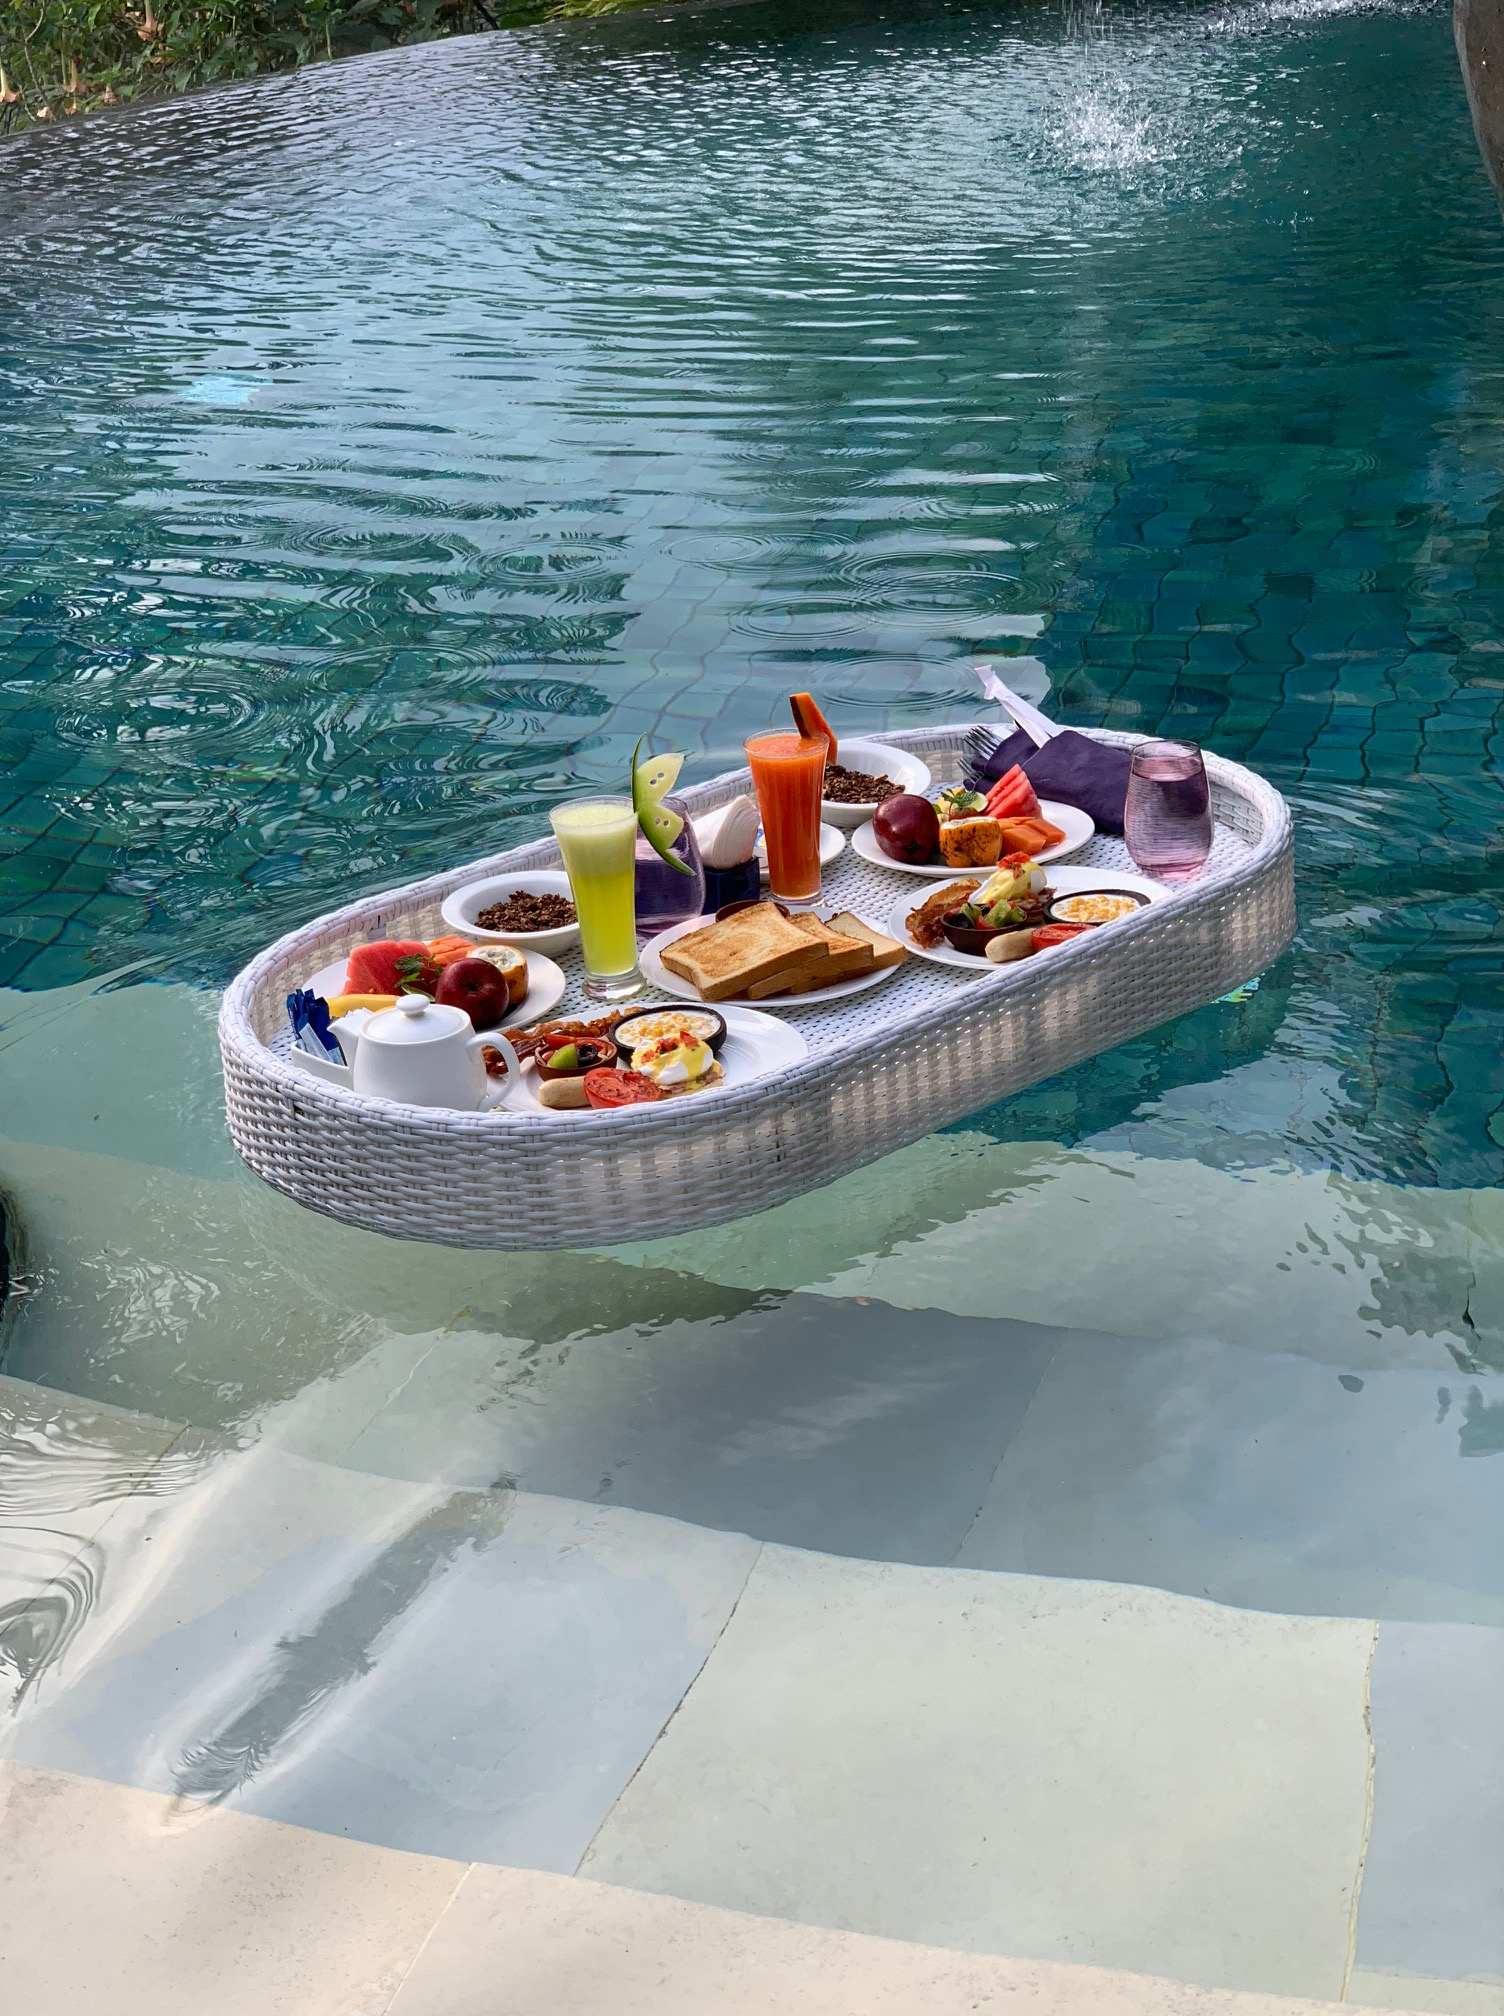 Floating Breakfast - Padma Resort Ubud